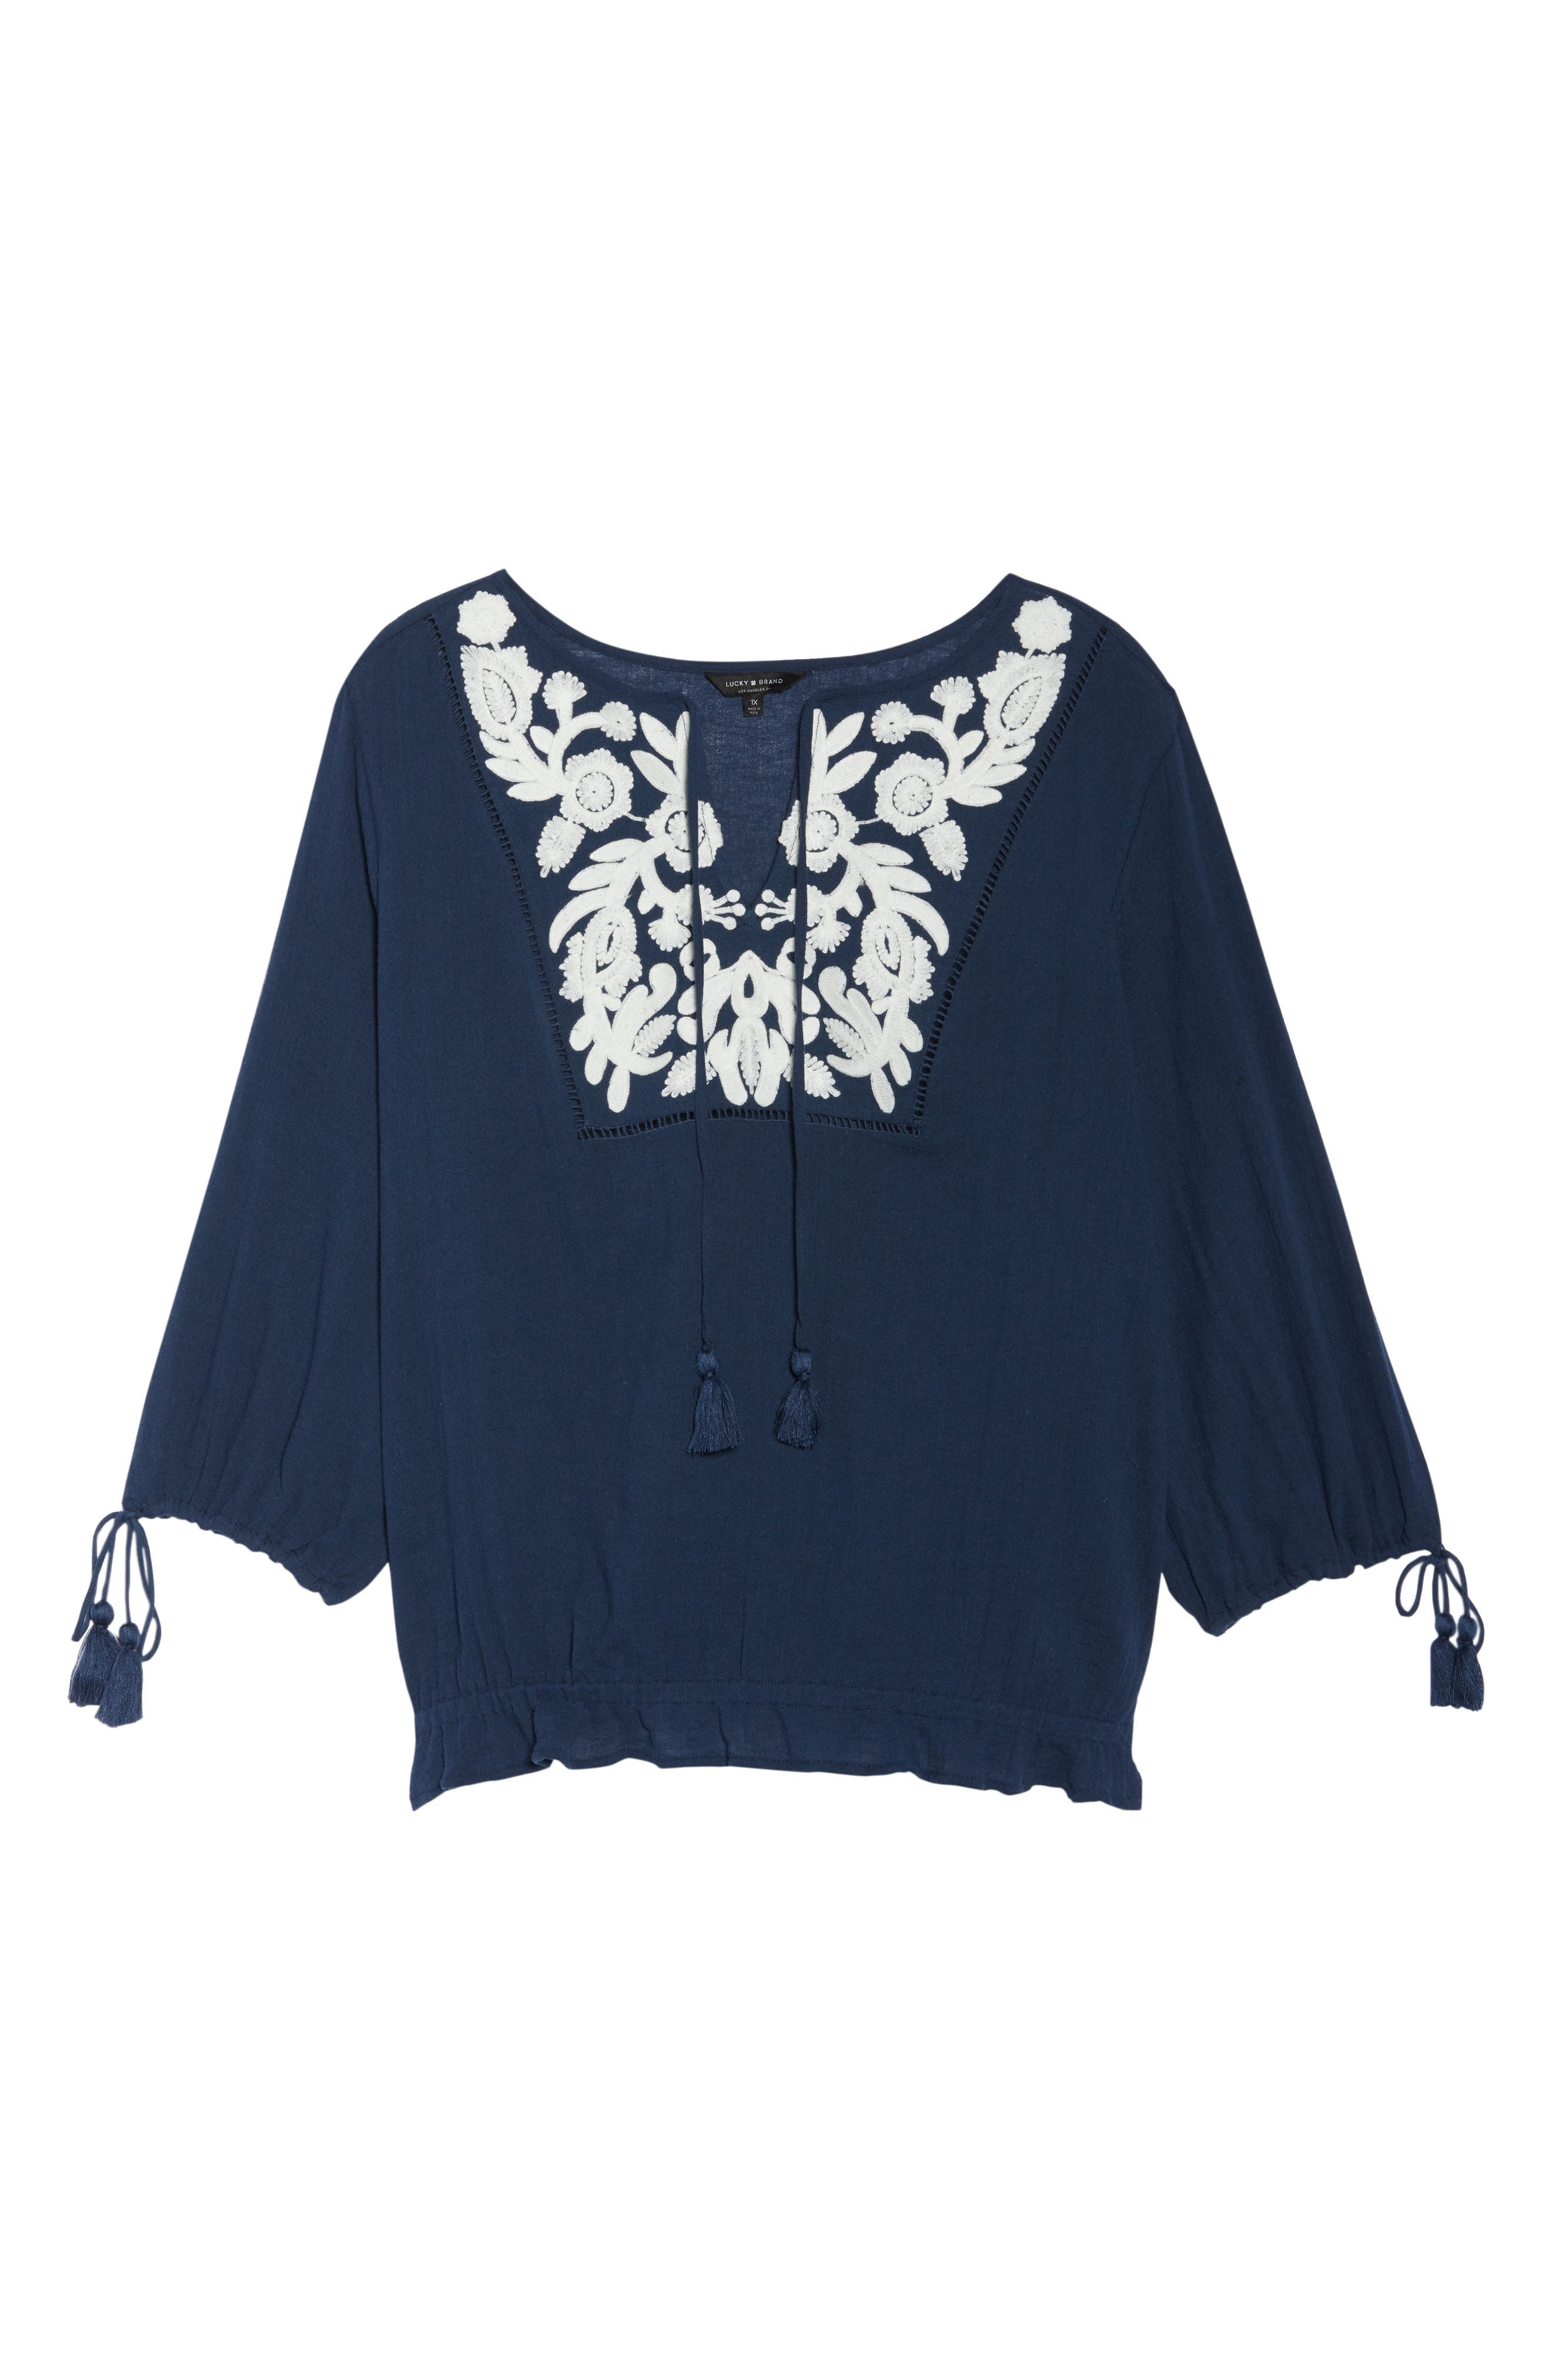 Embroidered Tassel Top,                             Alternate thumbnail 7, color,                             410